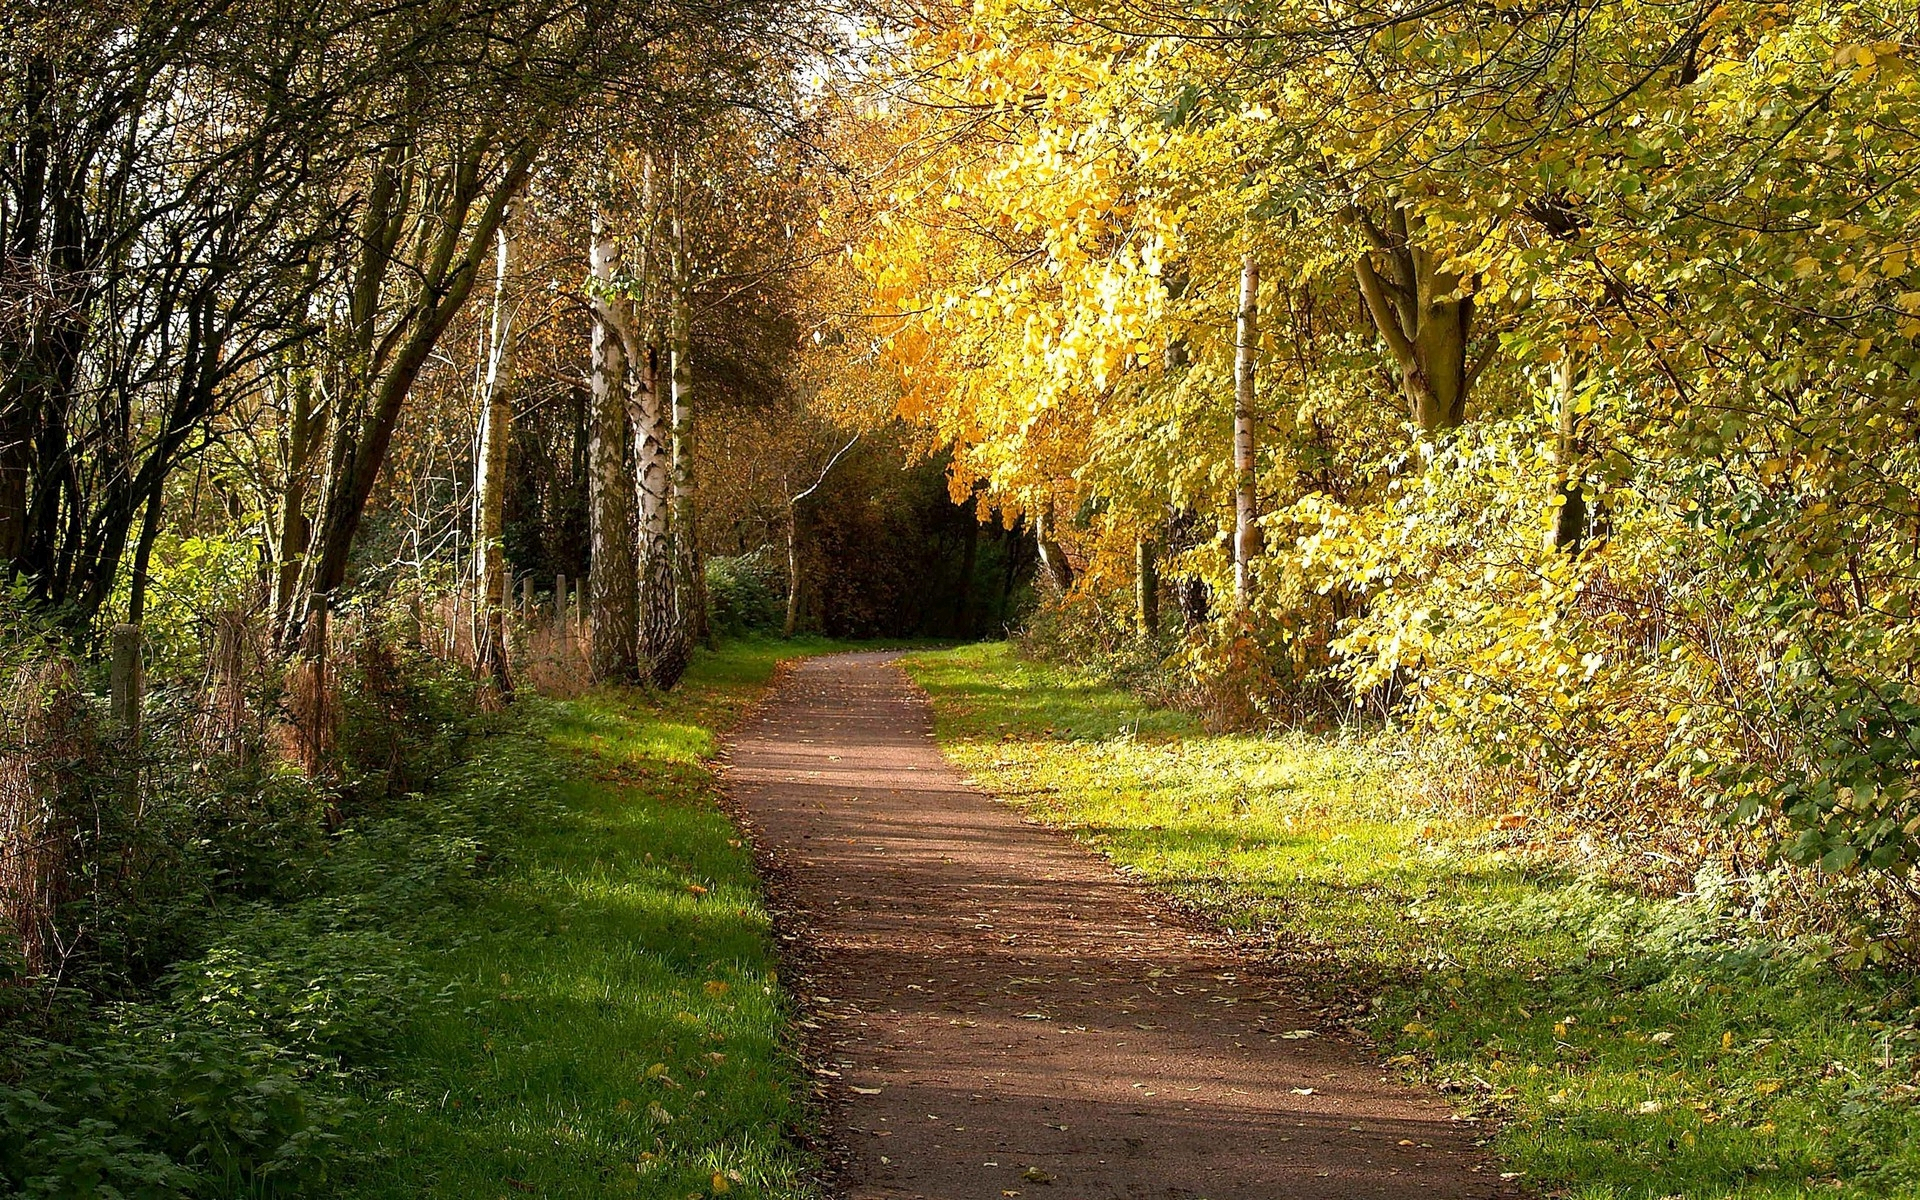 Forest Animated Wallpaper Mysterious Forest Path Grass Wallpapers Mysterious